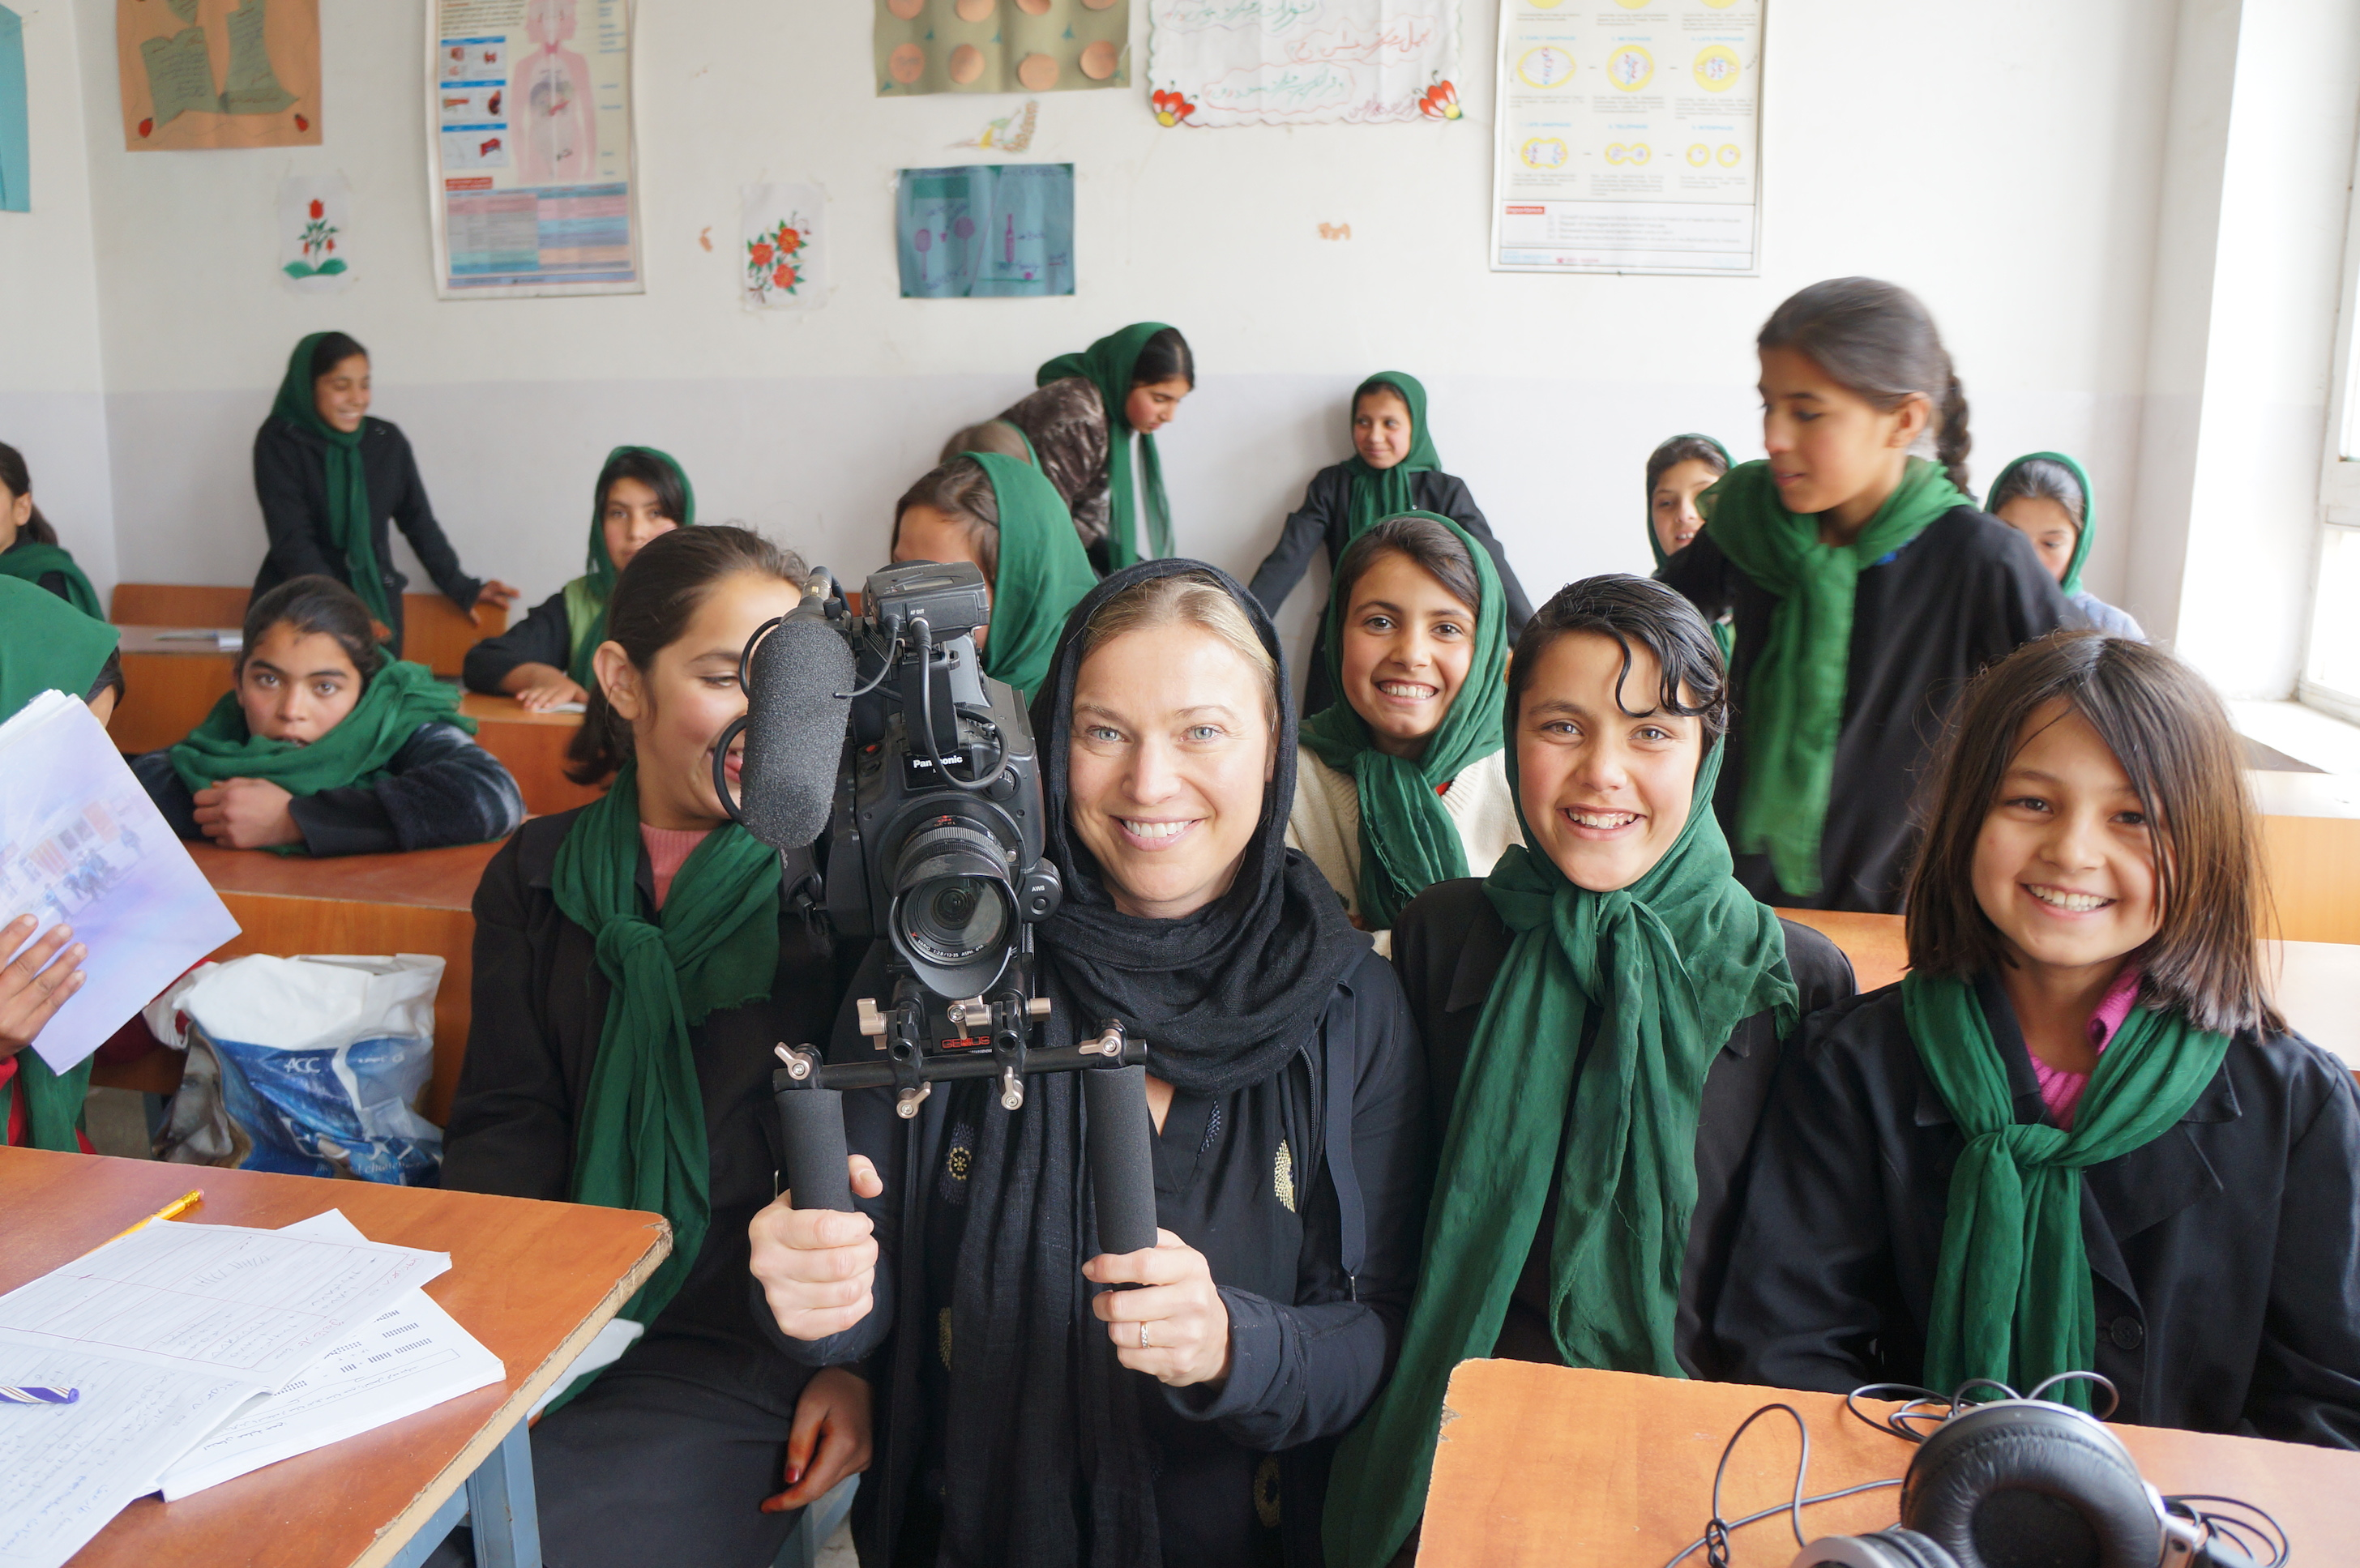 GroundTruth Films Director Beth Murphy poses with a classroom of students in Afghanistan.